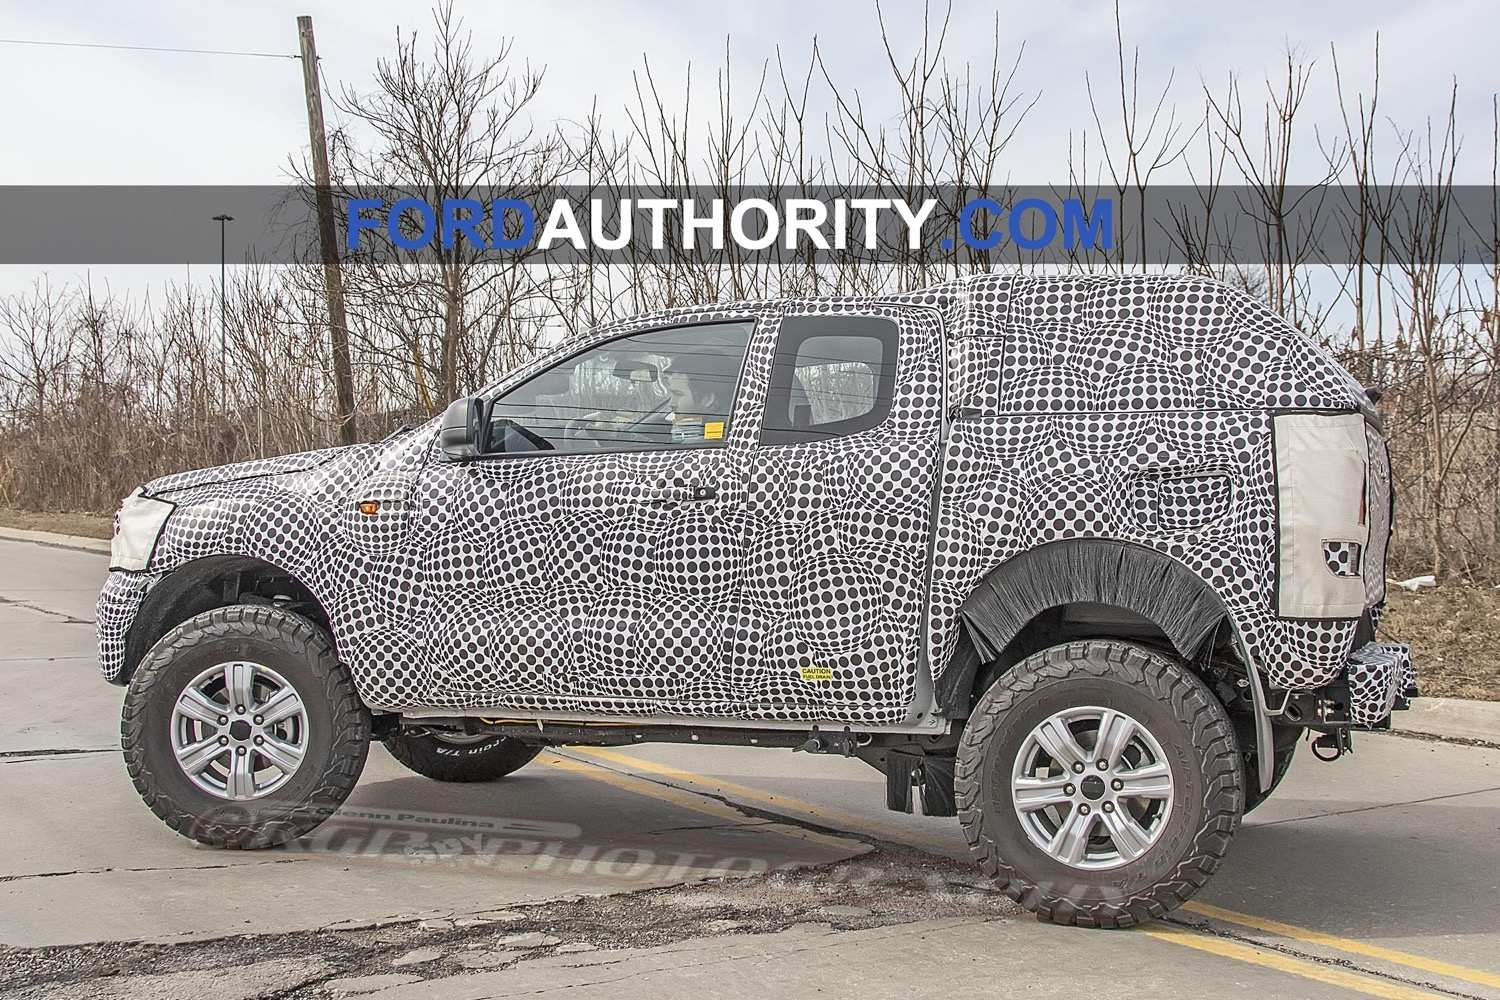 37 All New Ford Bronco 2020 Release Date Pictures with Ford Bronco 2020 Release Date